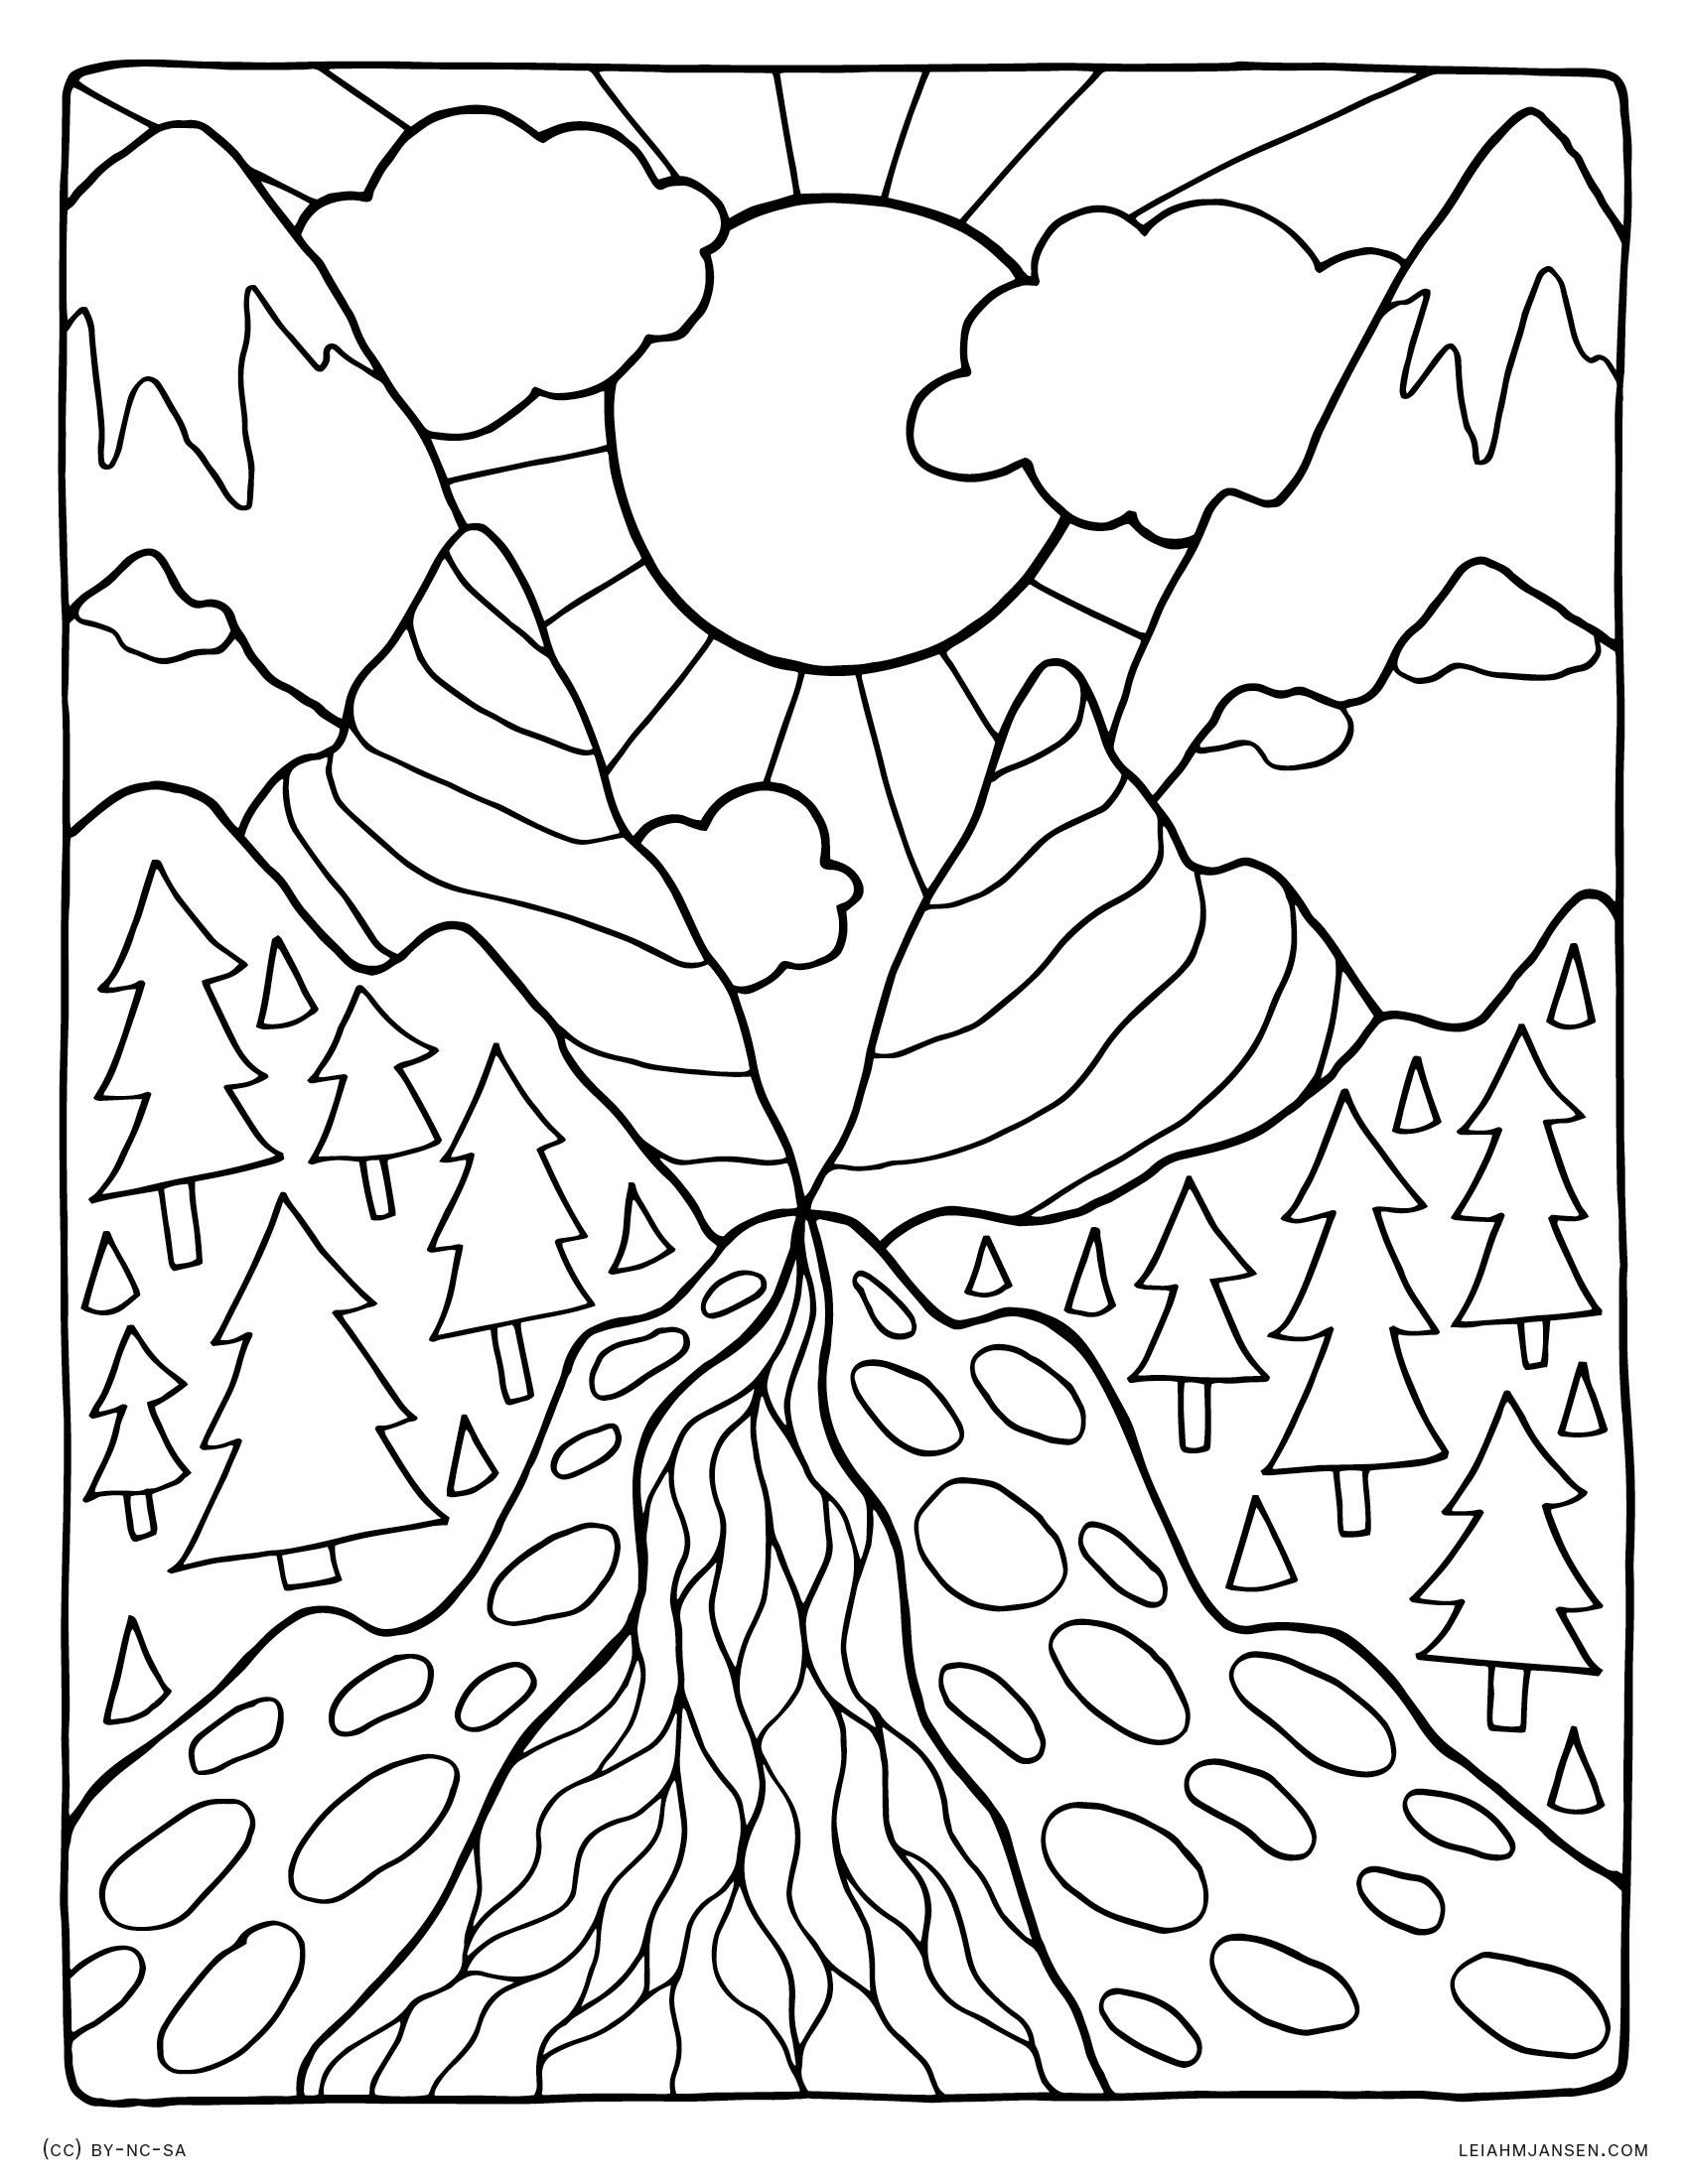 mountain pictures to color mountain range coloring pages at getdrawings free download color mountain pictures to